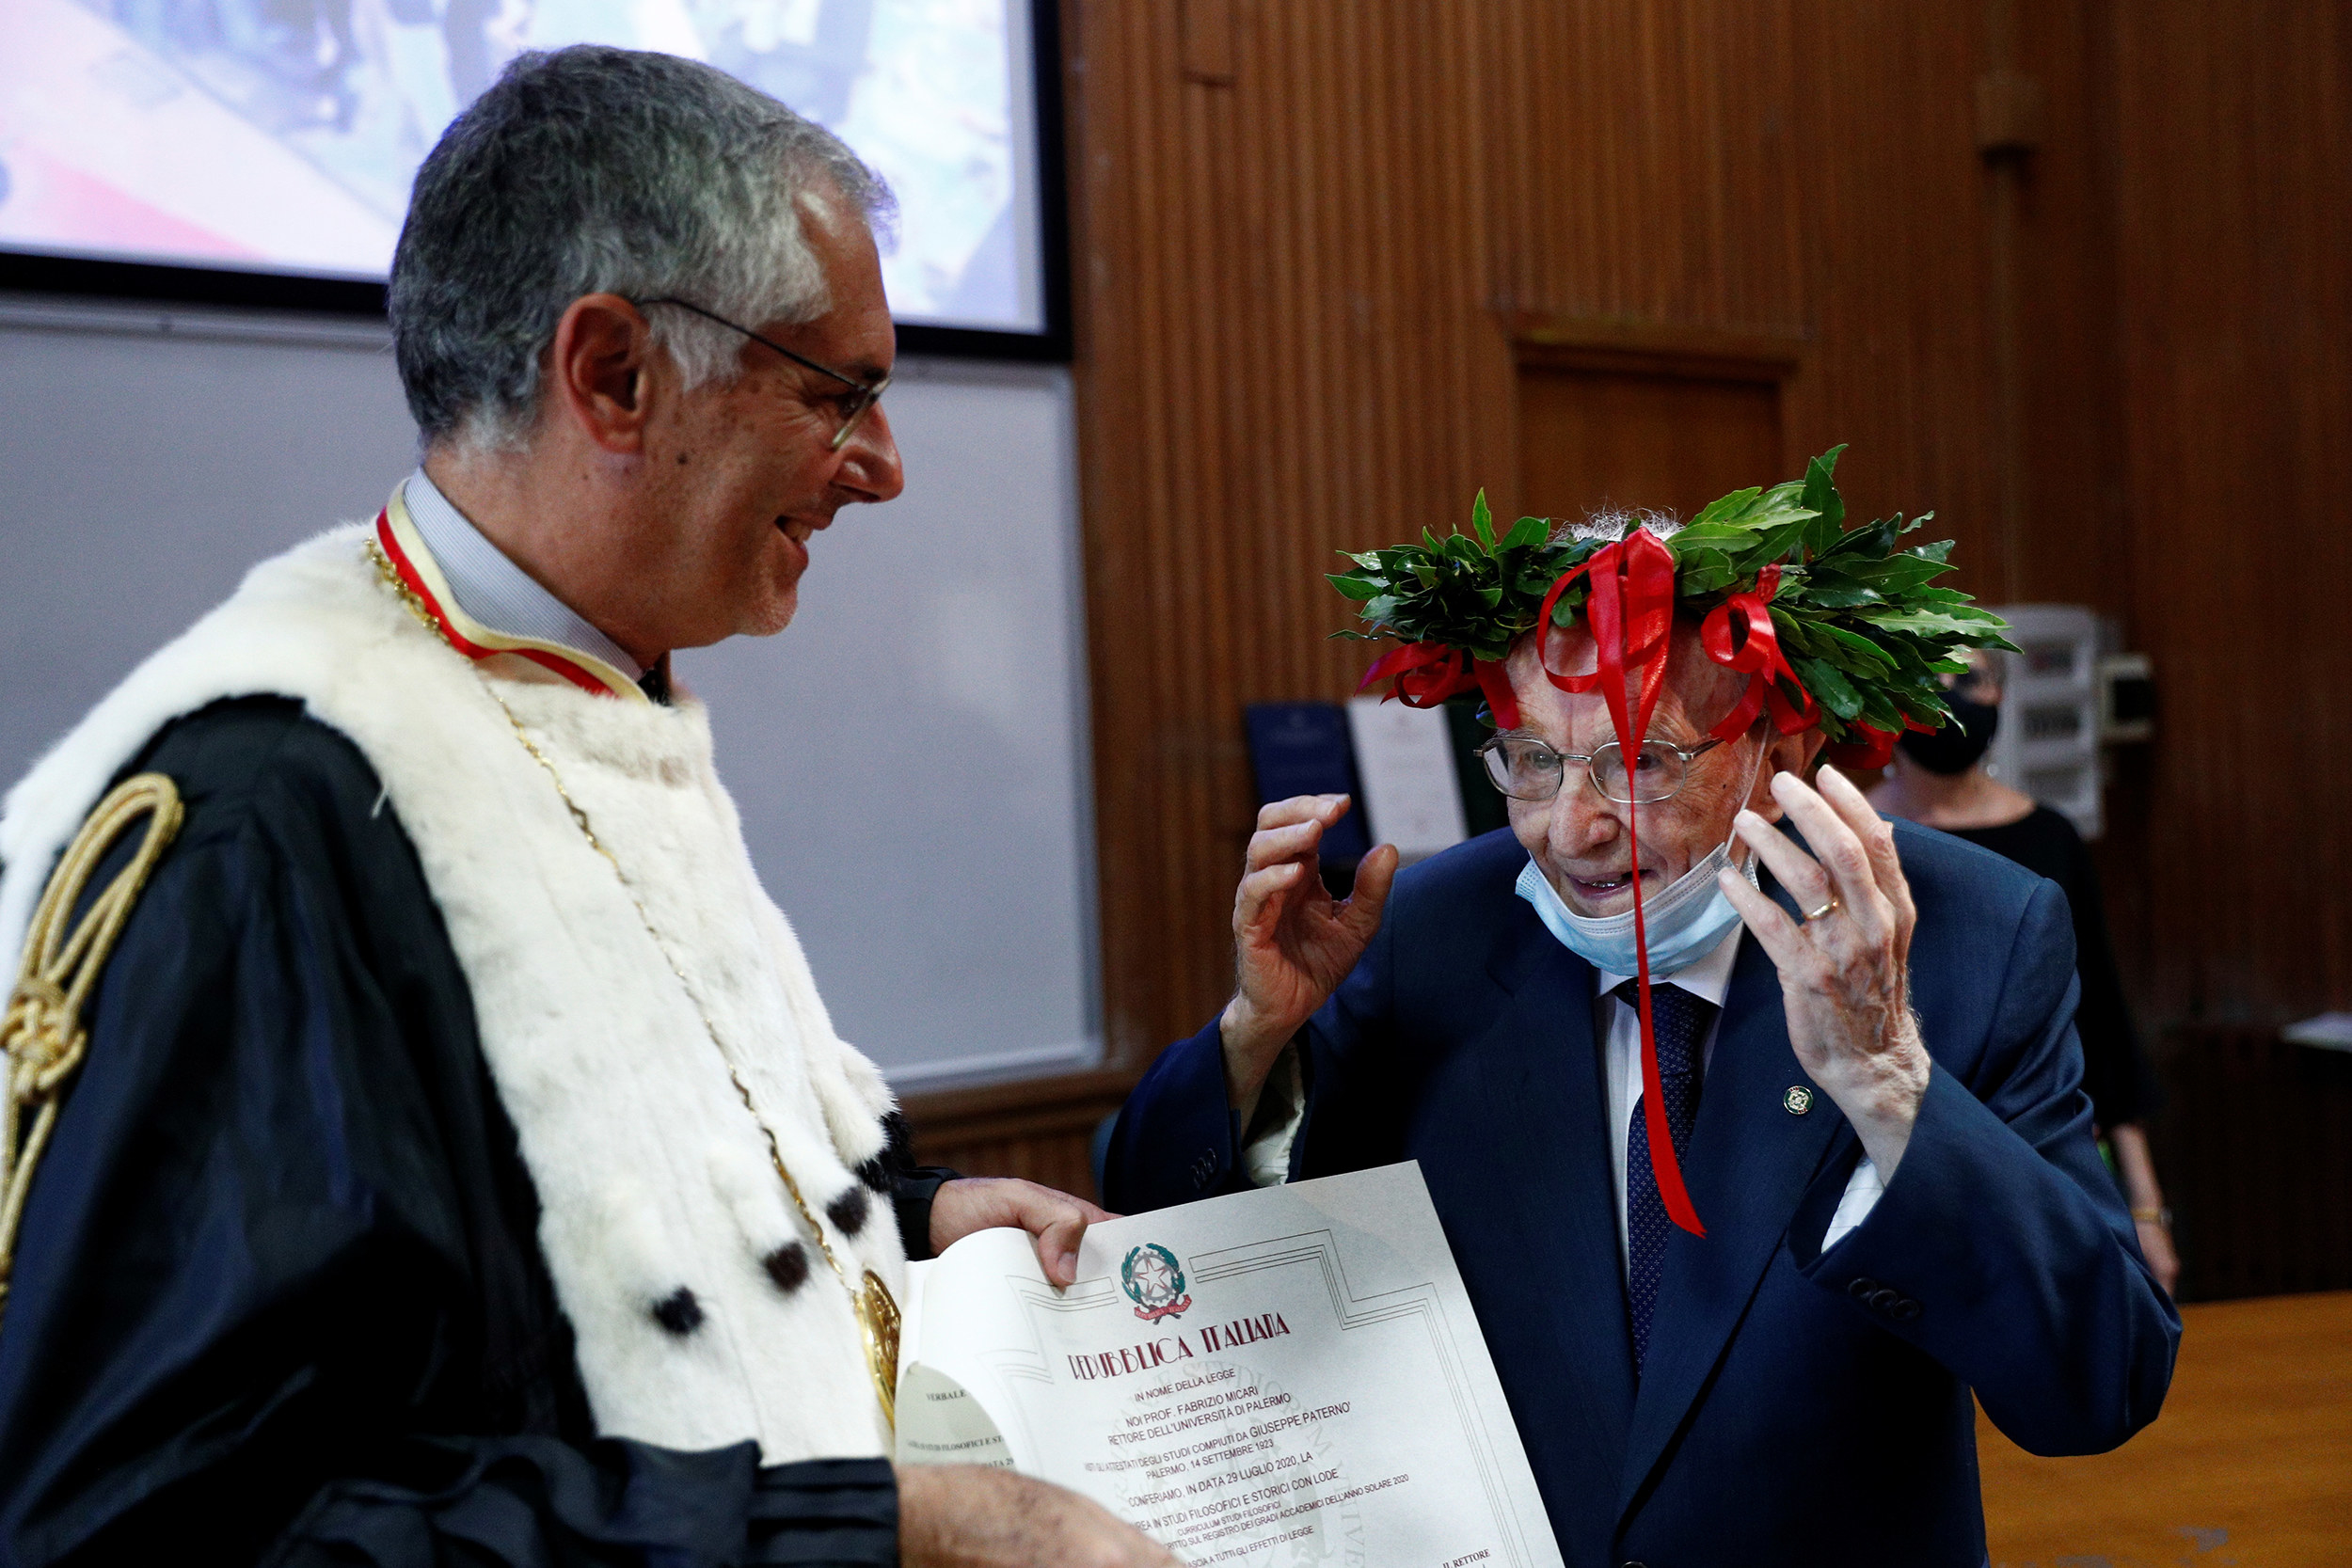 An old man with a suit wearing a crown of laurels smiles while another man, slightly younger and dressed as a college dean hands him a graduation certificate